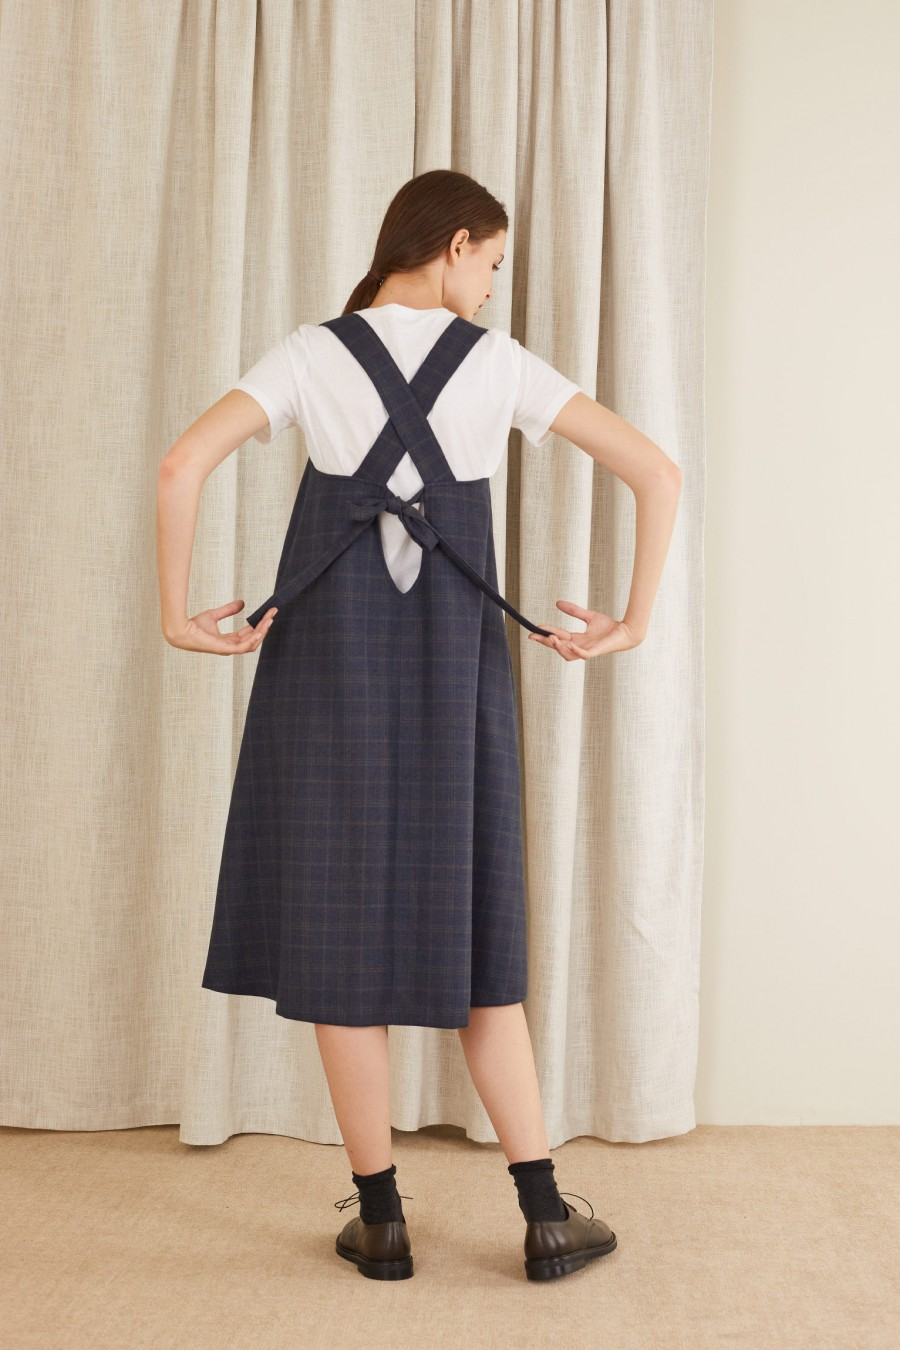 pinafore dress with a bow on the back